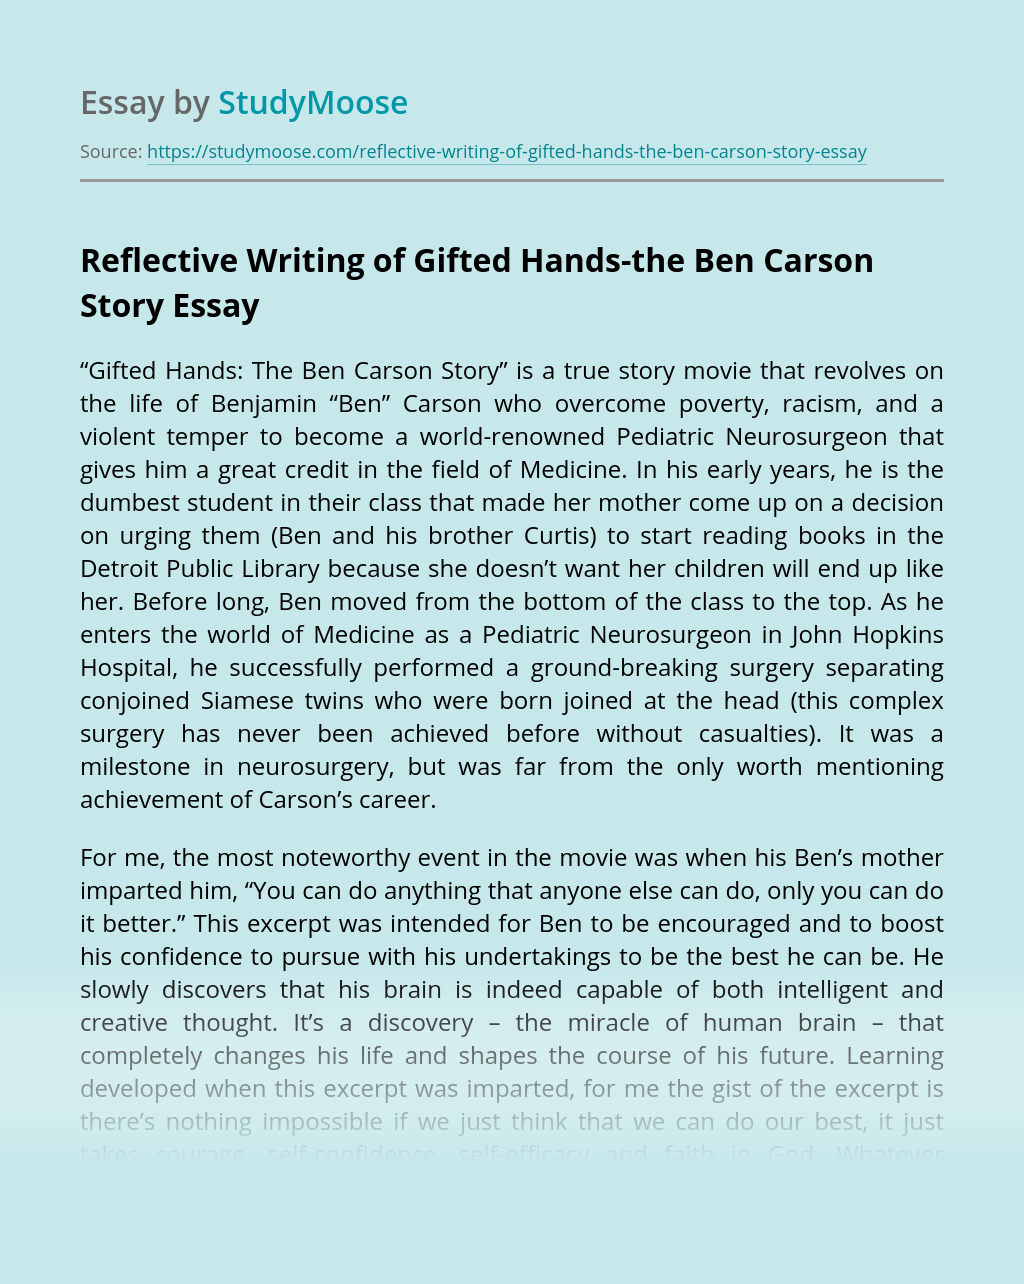 Reflective Writing of Gifted Hands-the Ben Carson Story